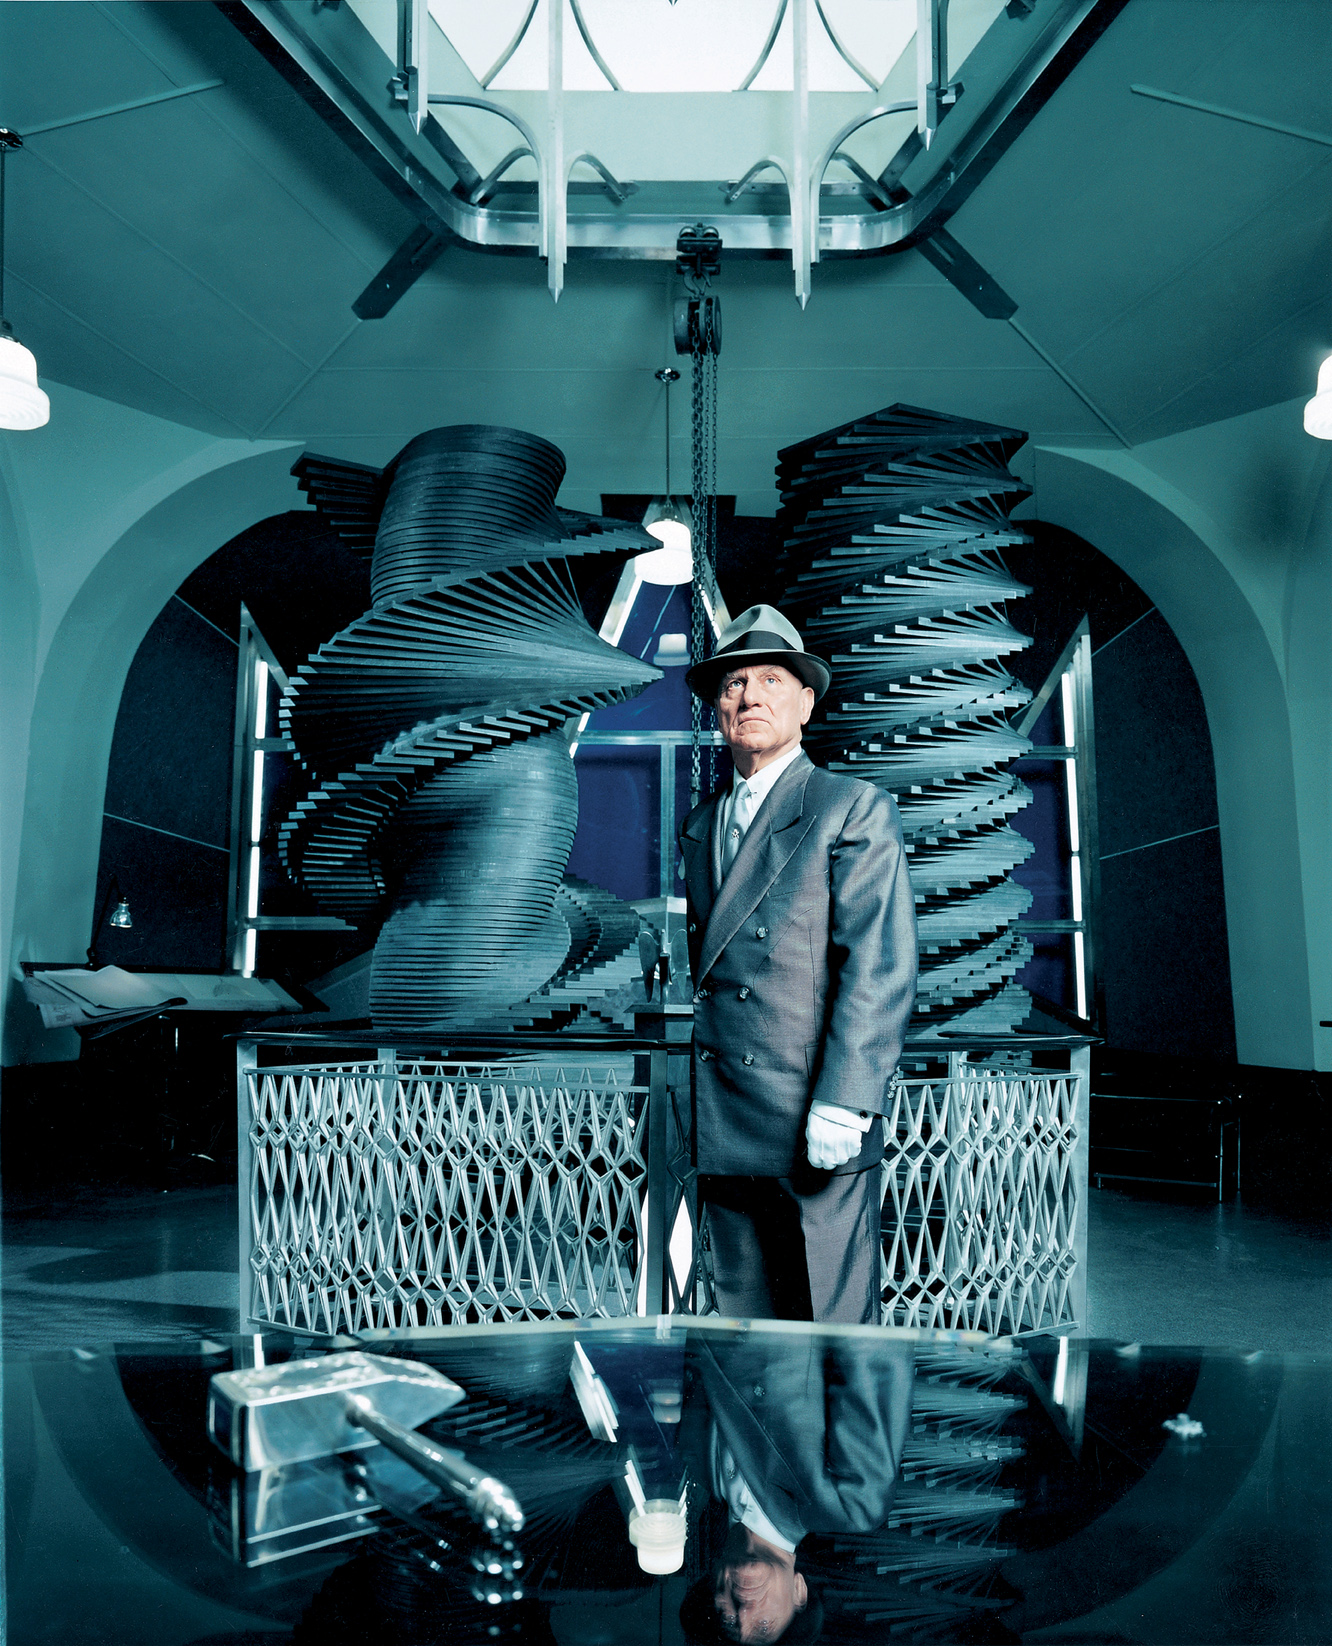 Richard Serra as Hiram Abiff in CREMASTER 3, by Matthew Barney, 2002. Photograph by Chris Winget. © 2002 Matthew Barney, courtesy Gladstone Gallery, New York and Brussels.